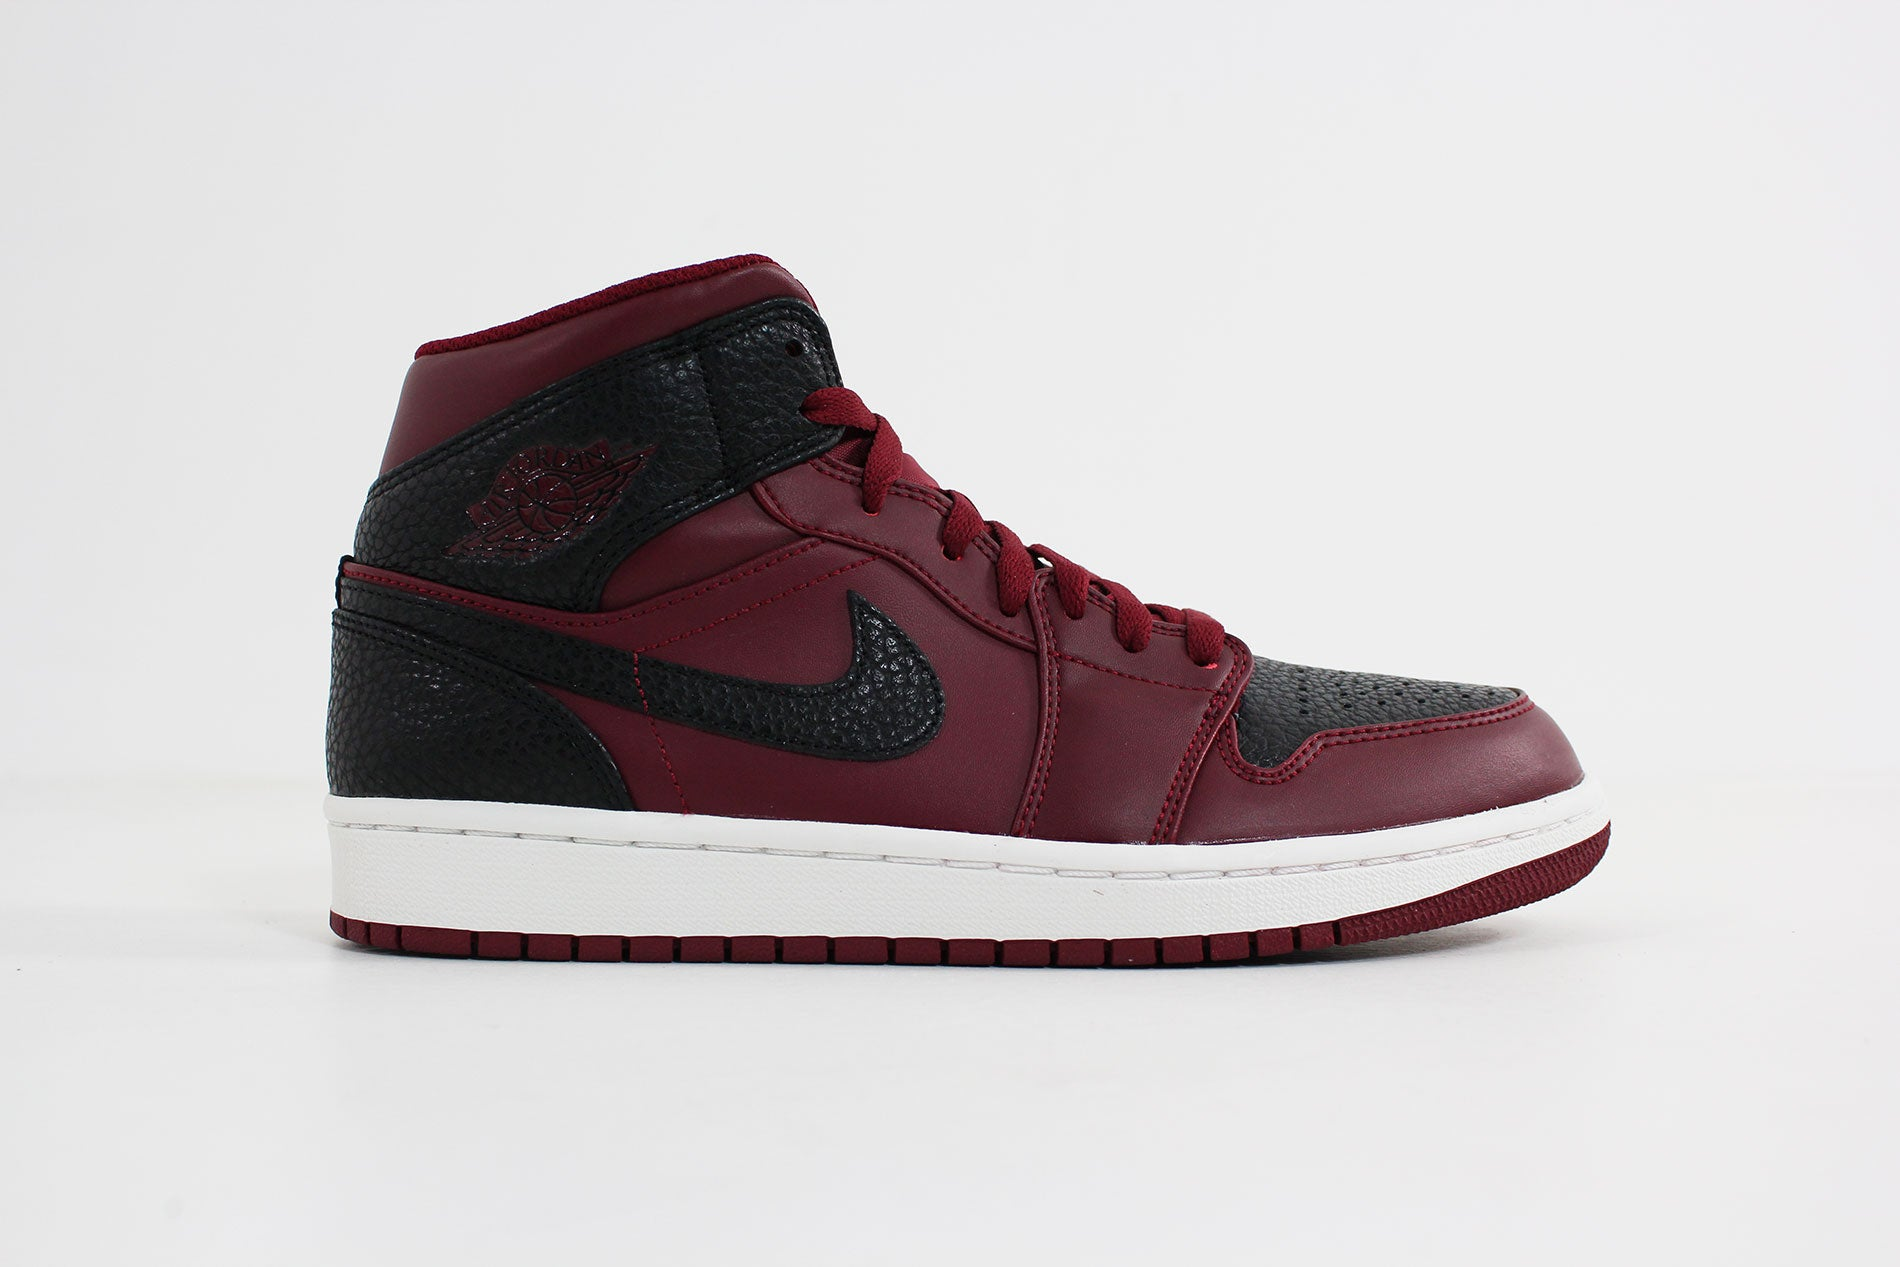 22d82197233e86 ... purchase air jordan 1 mid team red black summit white 554724 601 28d87  63236